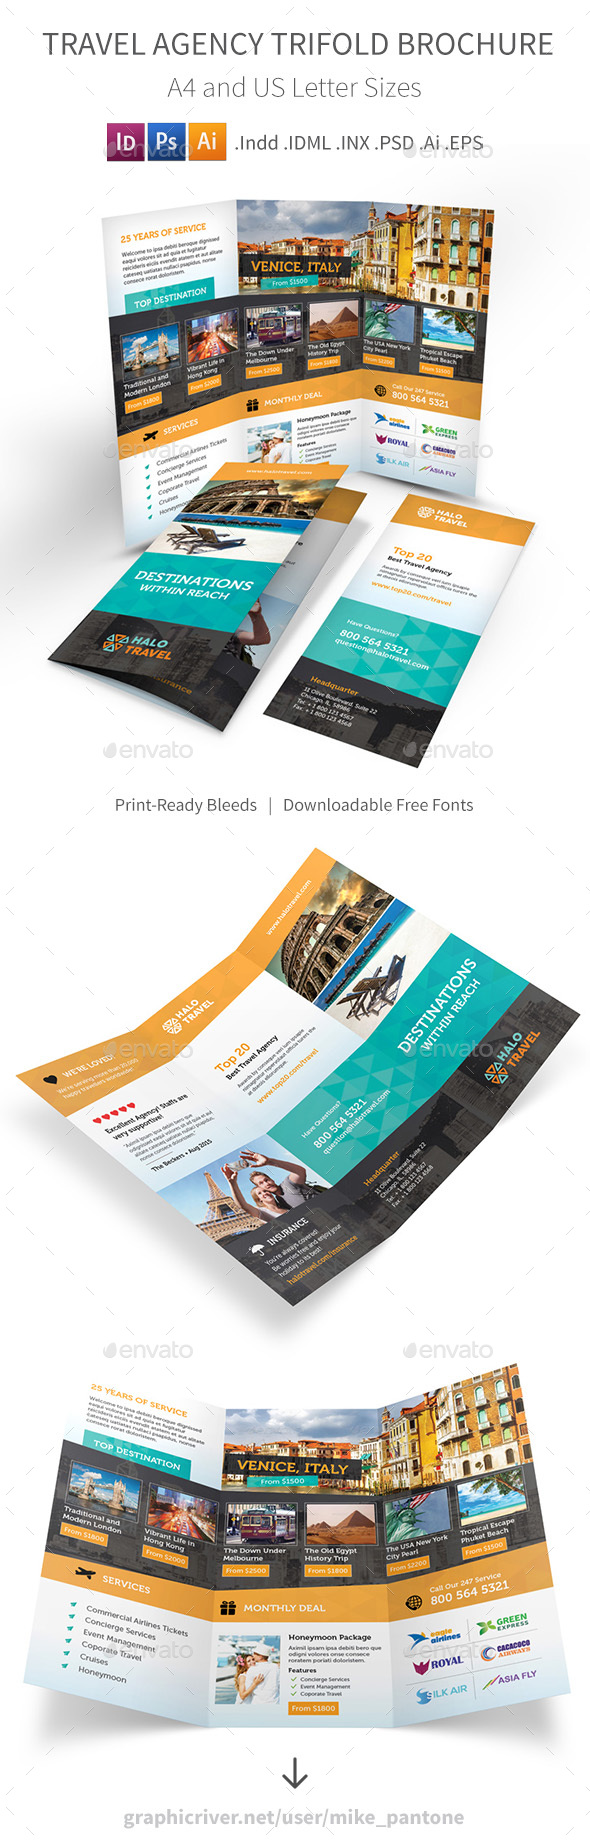 Travel Agency Trifold Brochure 2 - Informational Brochures